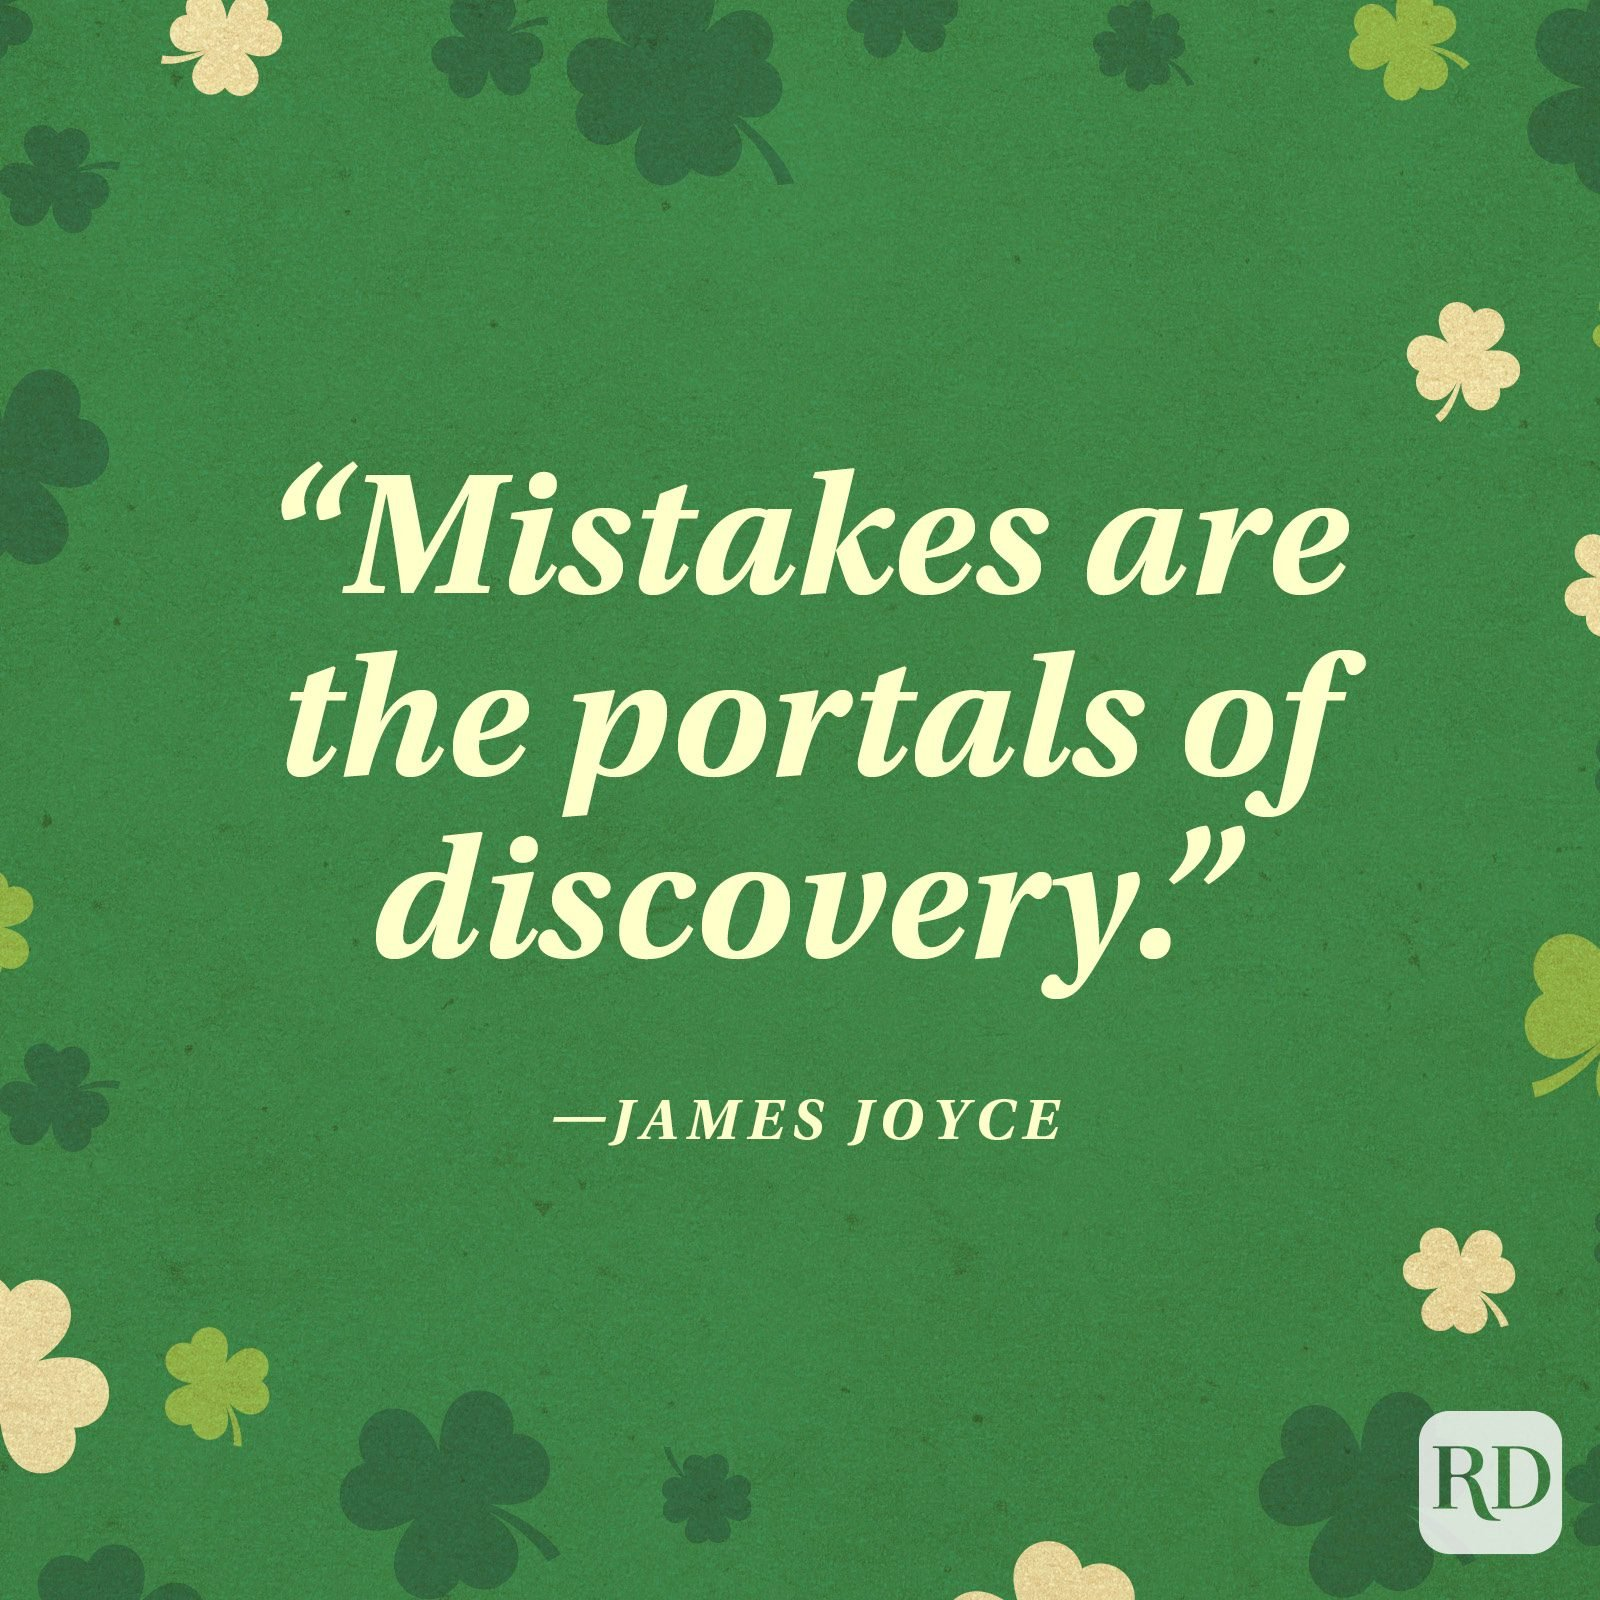 """Mistakes are the portals of discovery."" —James Joyce"